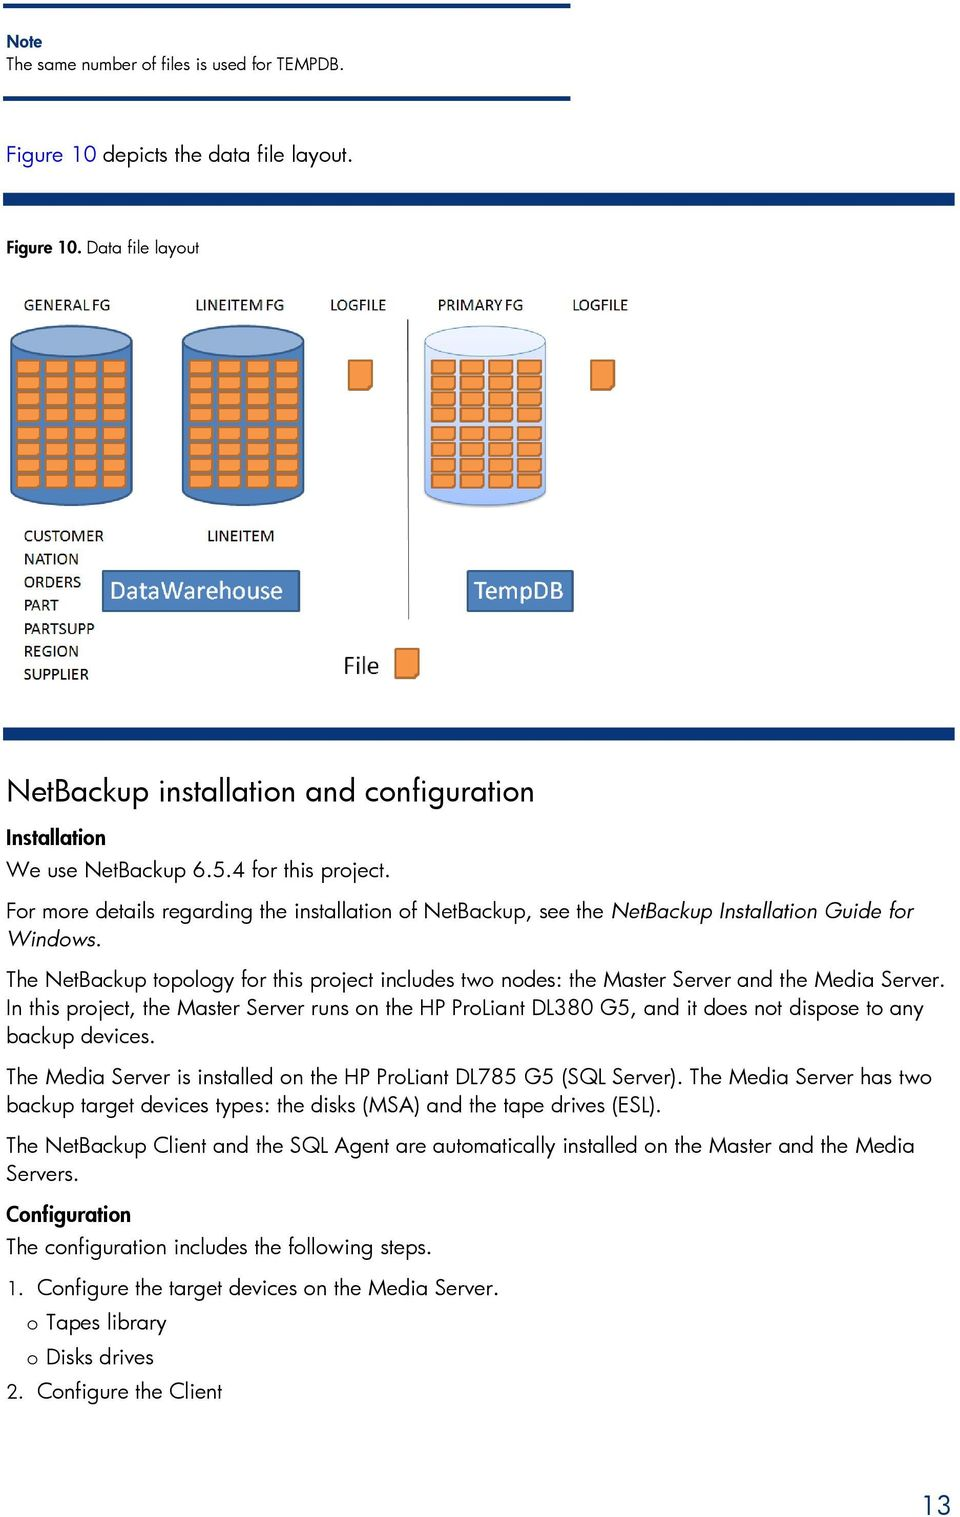 The NetBackup topology for this project includes two nodes: the Master Server and the Media Server.